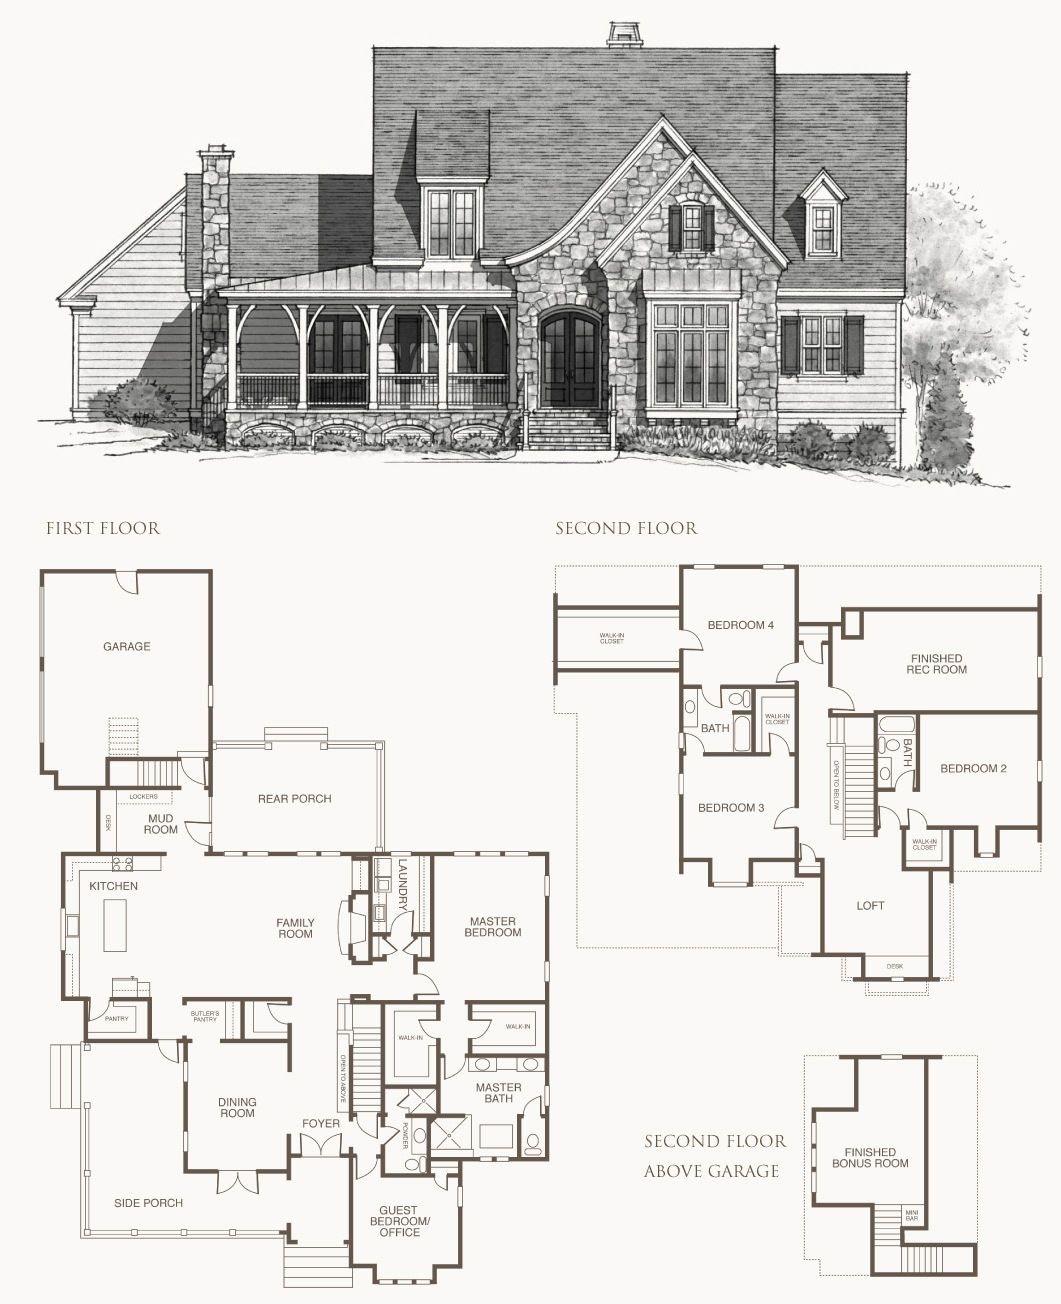 Southern living house plan elberton way home design and for Southern living house plans with keeping rooms